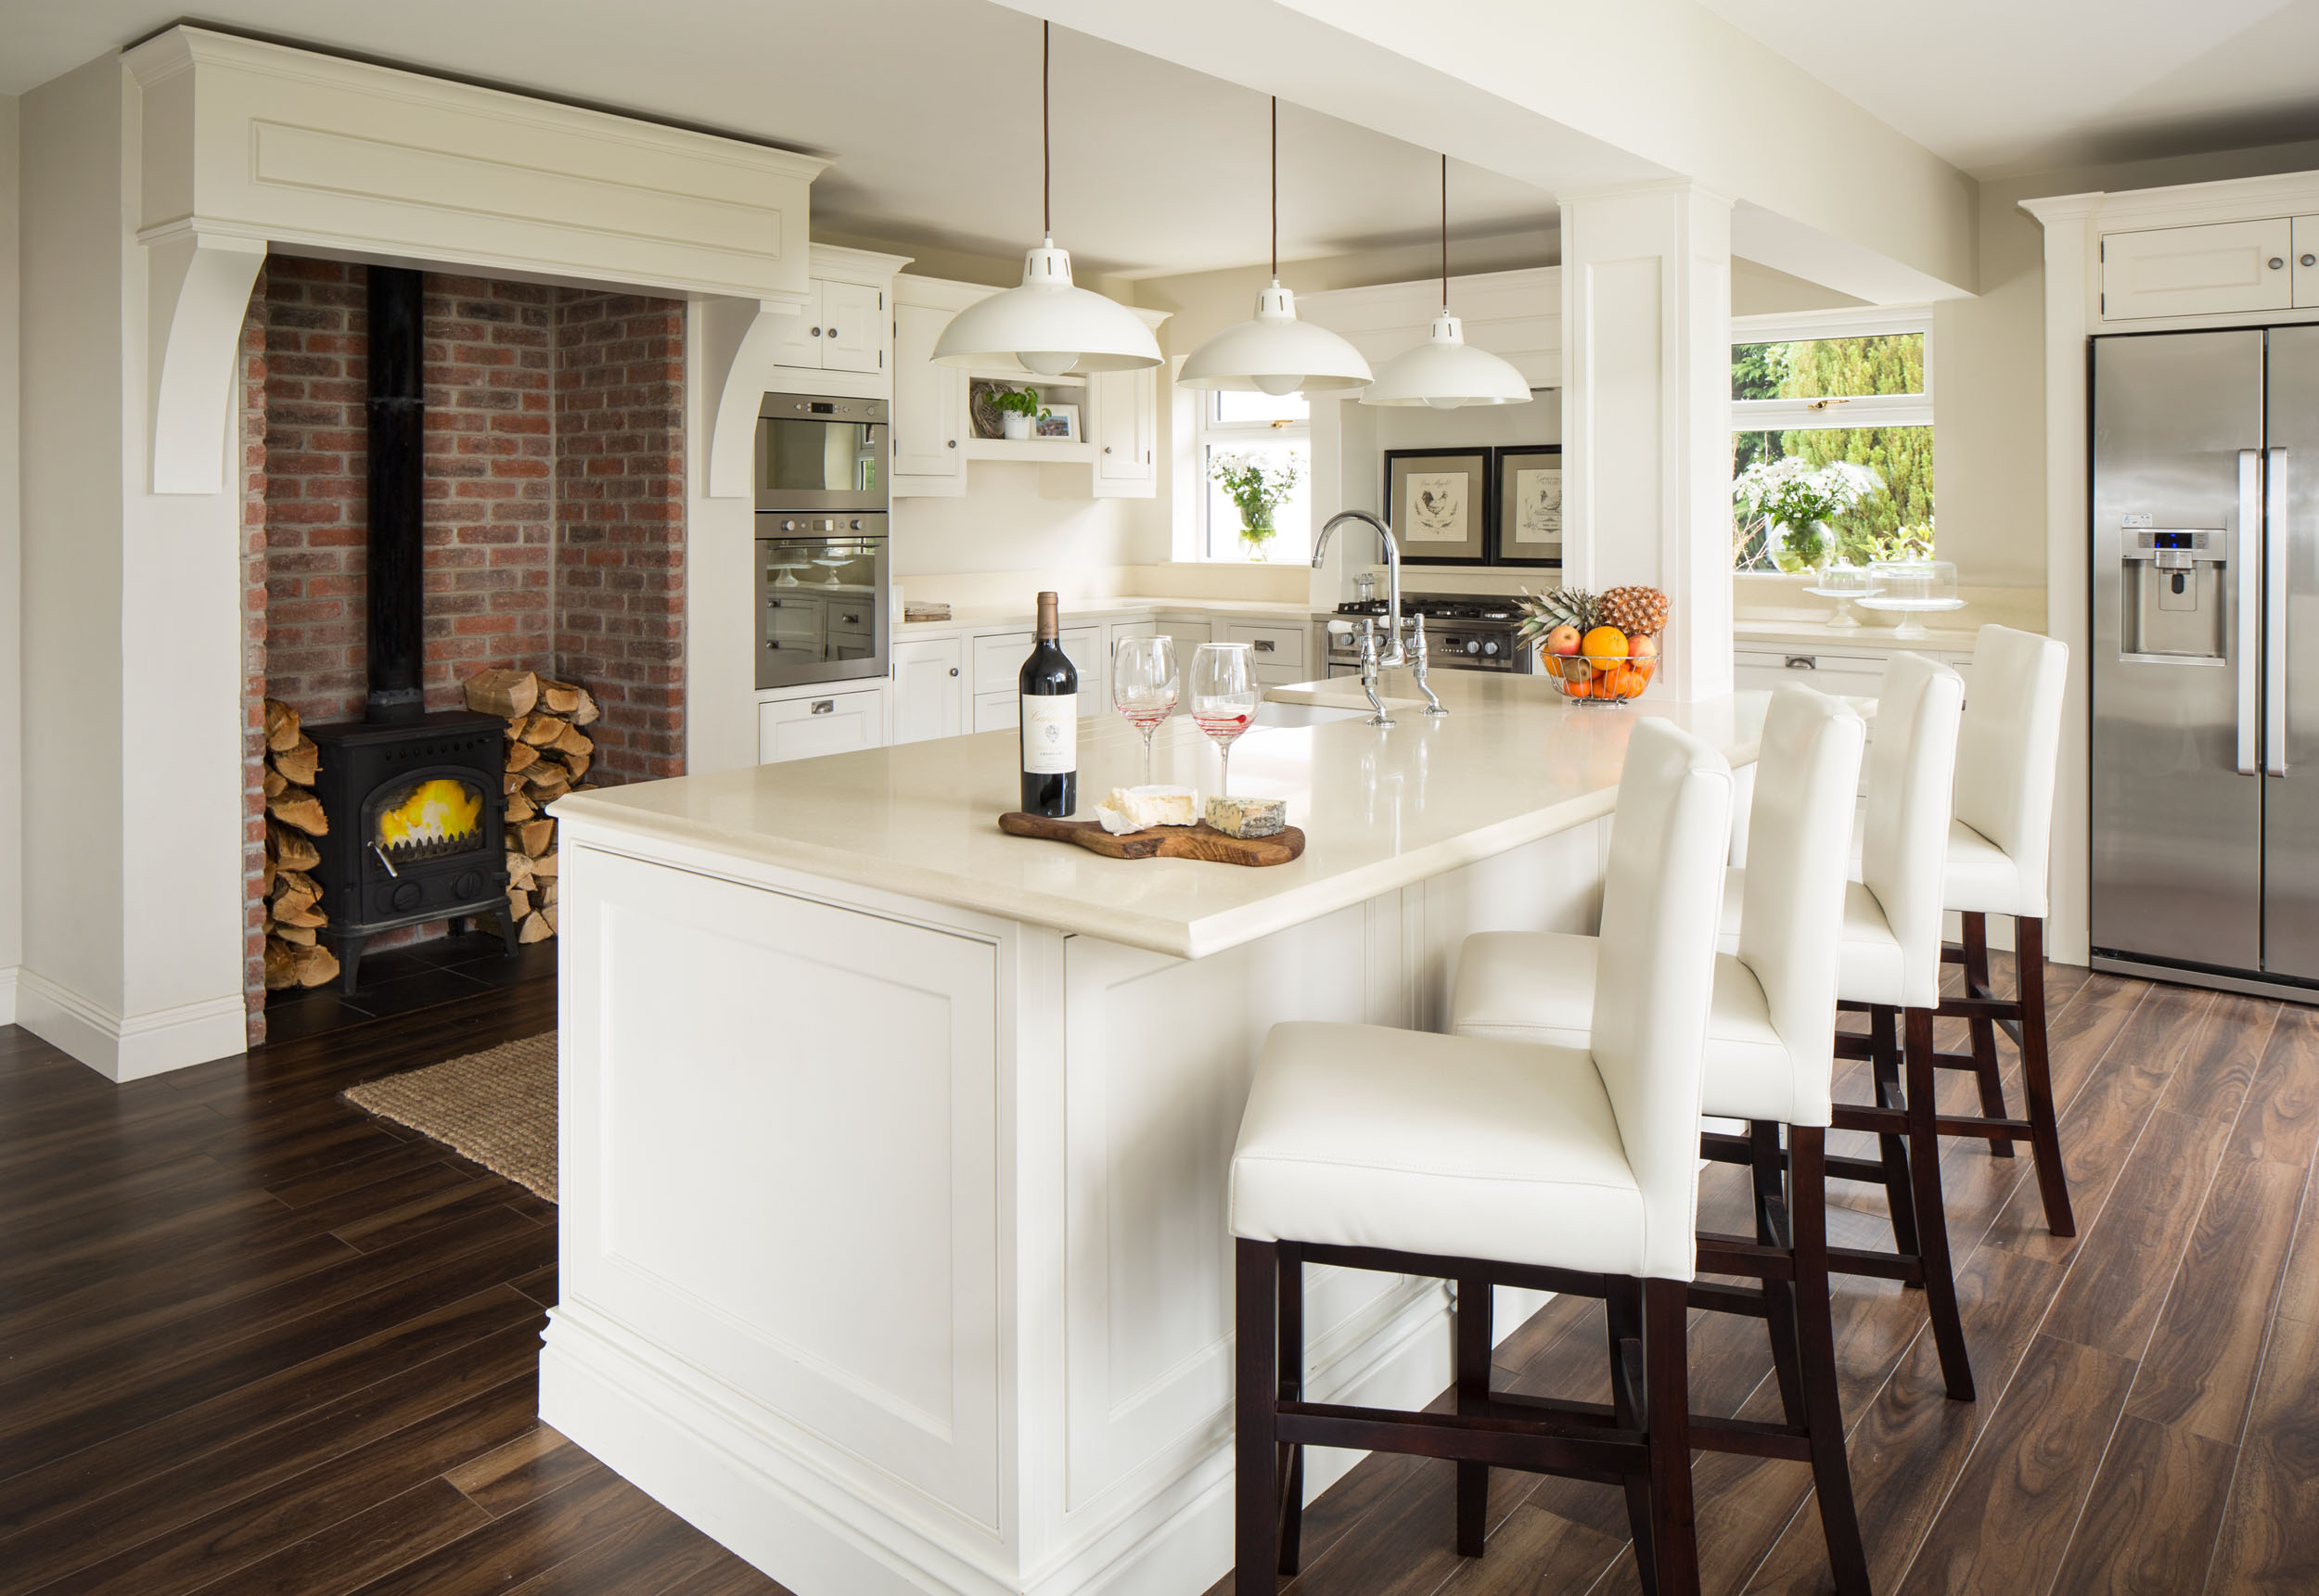 Etonnant Beautiful Kitchen, Interior Photograph From Kildare Wicklow